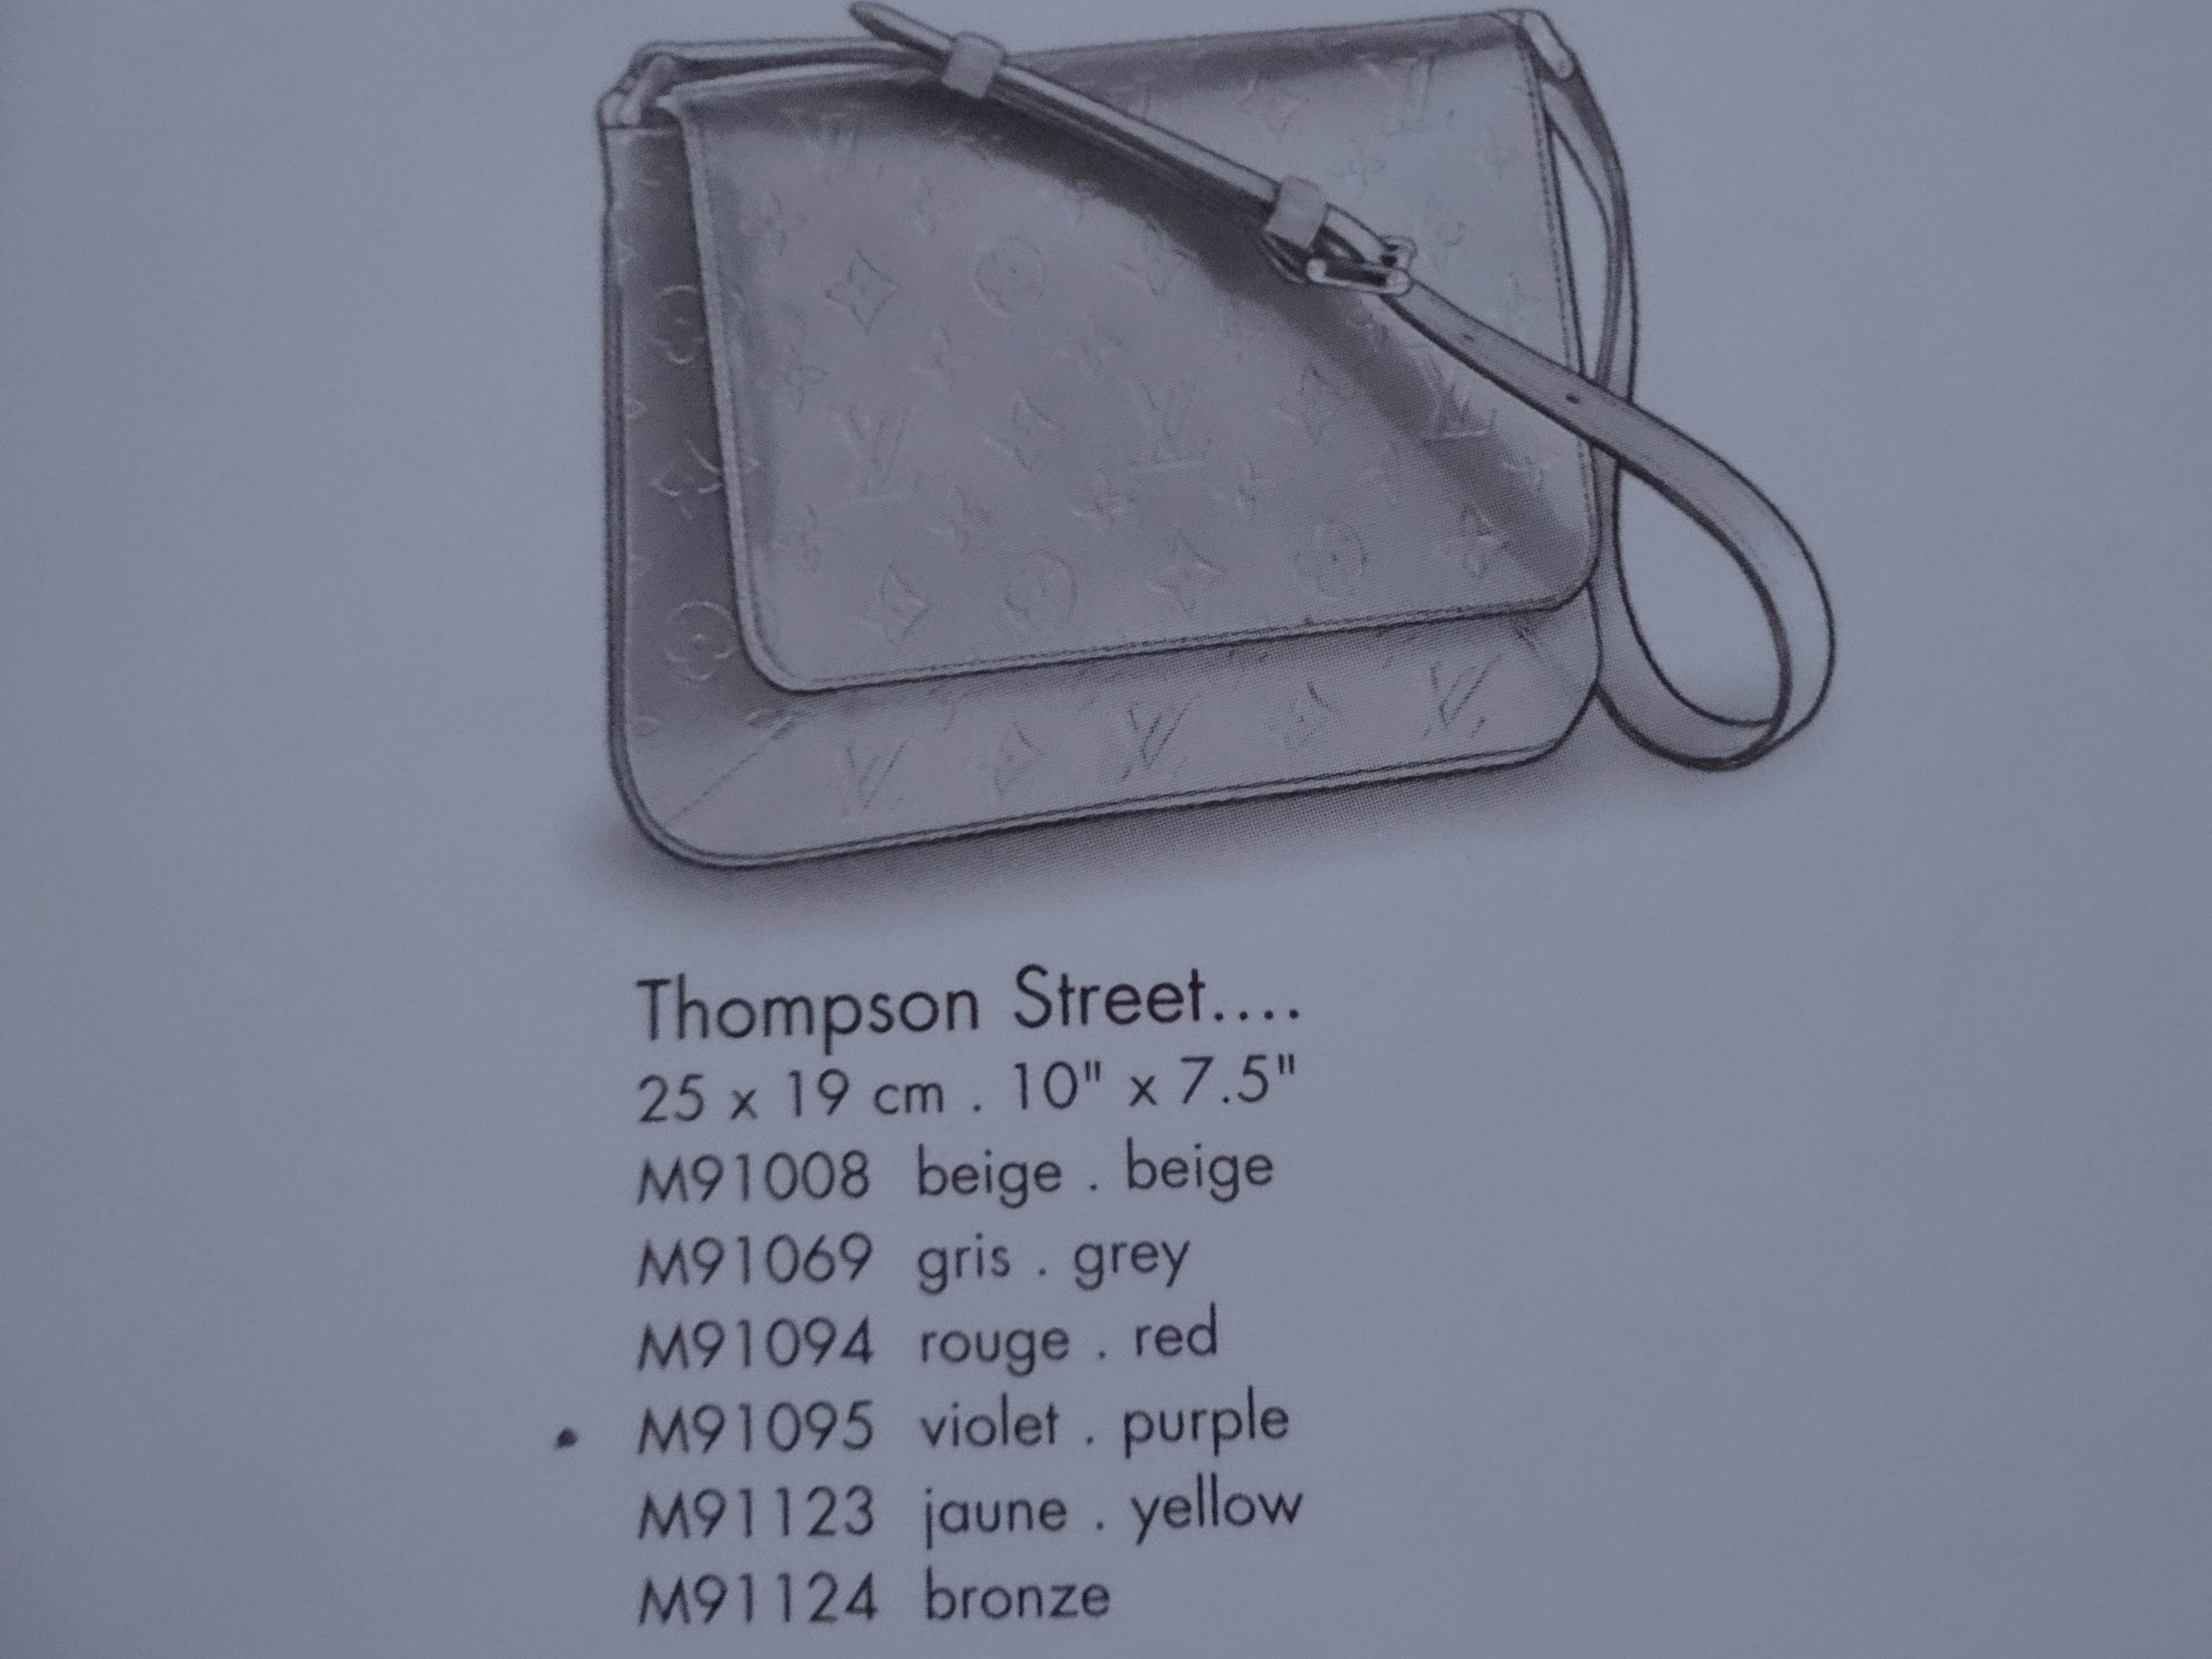 Thompson Street (c) Louis Vuitton Le Catalogue 2001